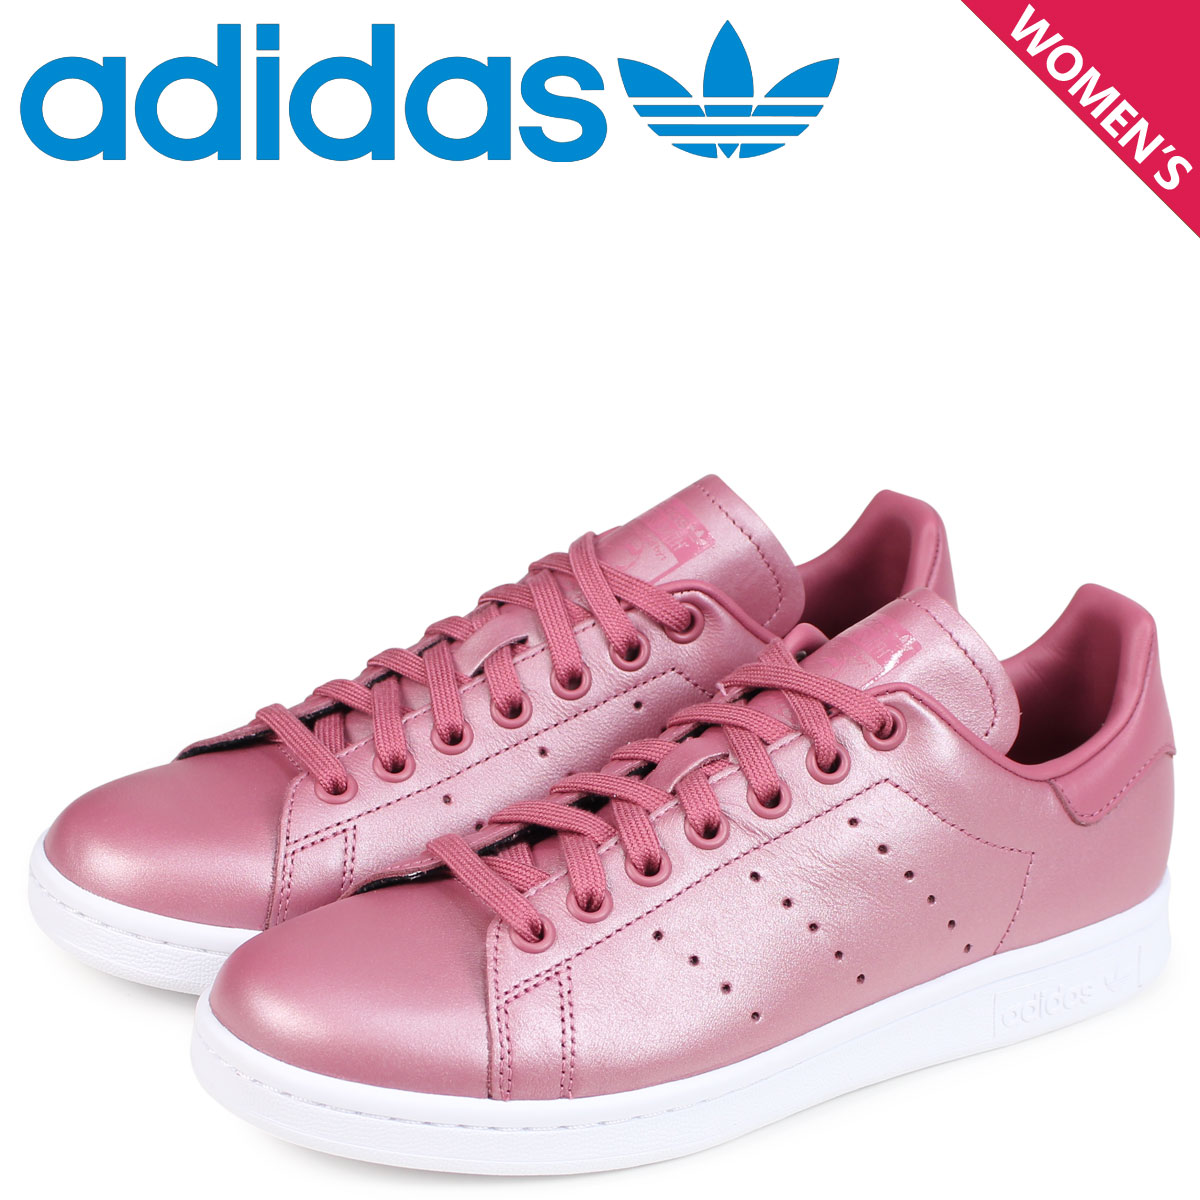 later great quality outlet store sale adidas Originals Stan Smith Adidas originals Lady's sneakers STAN SMITH W  CM8603 pink